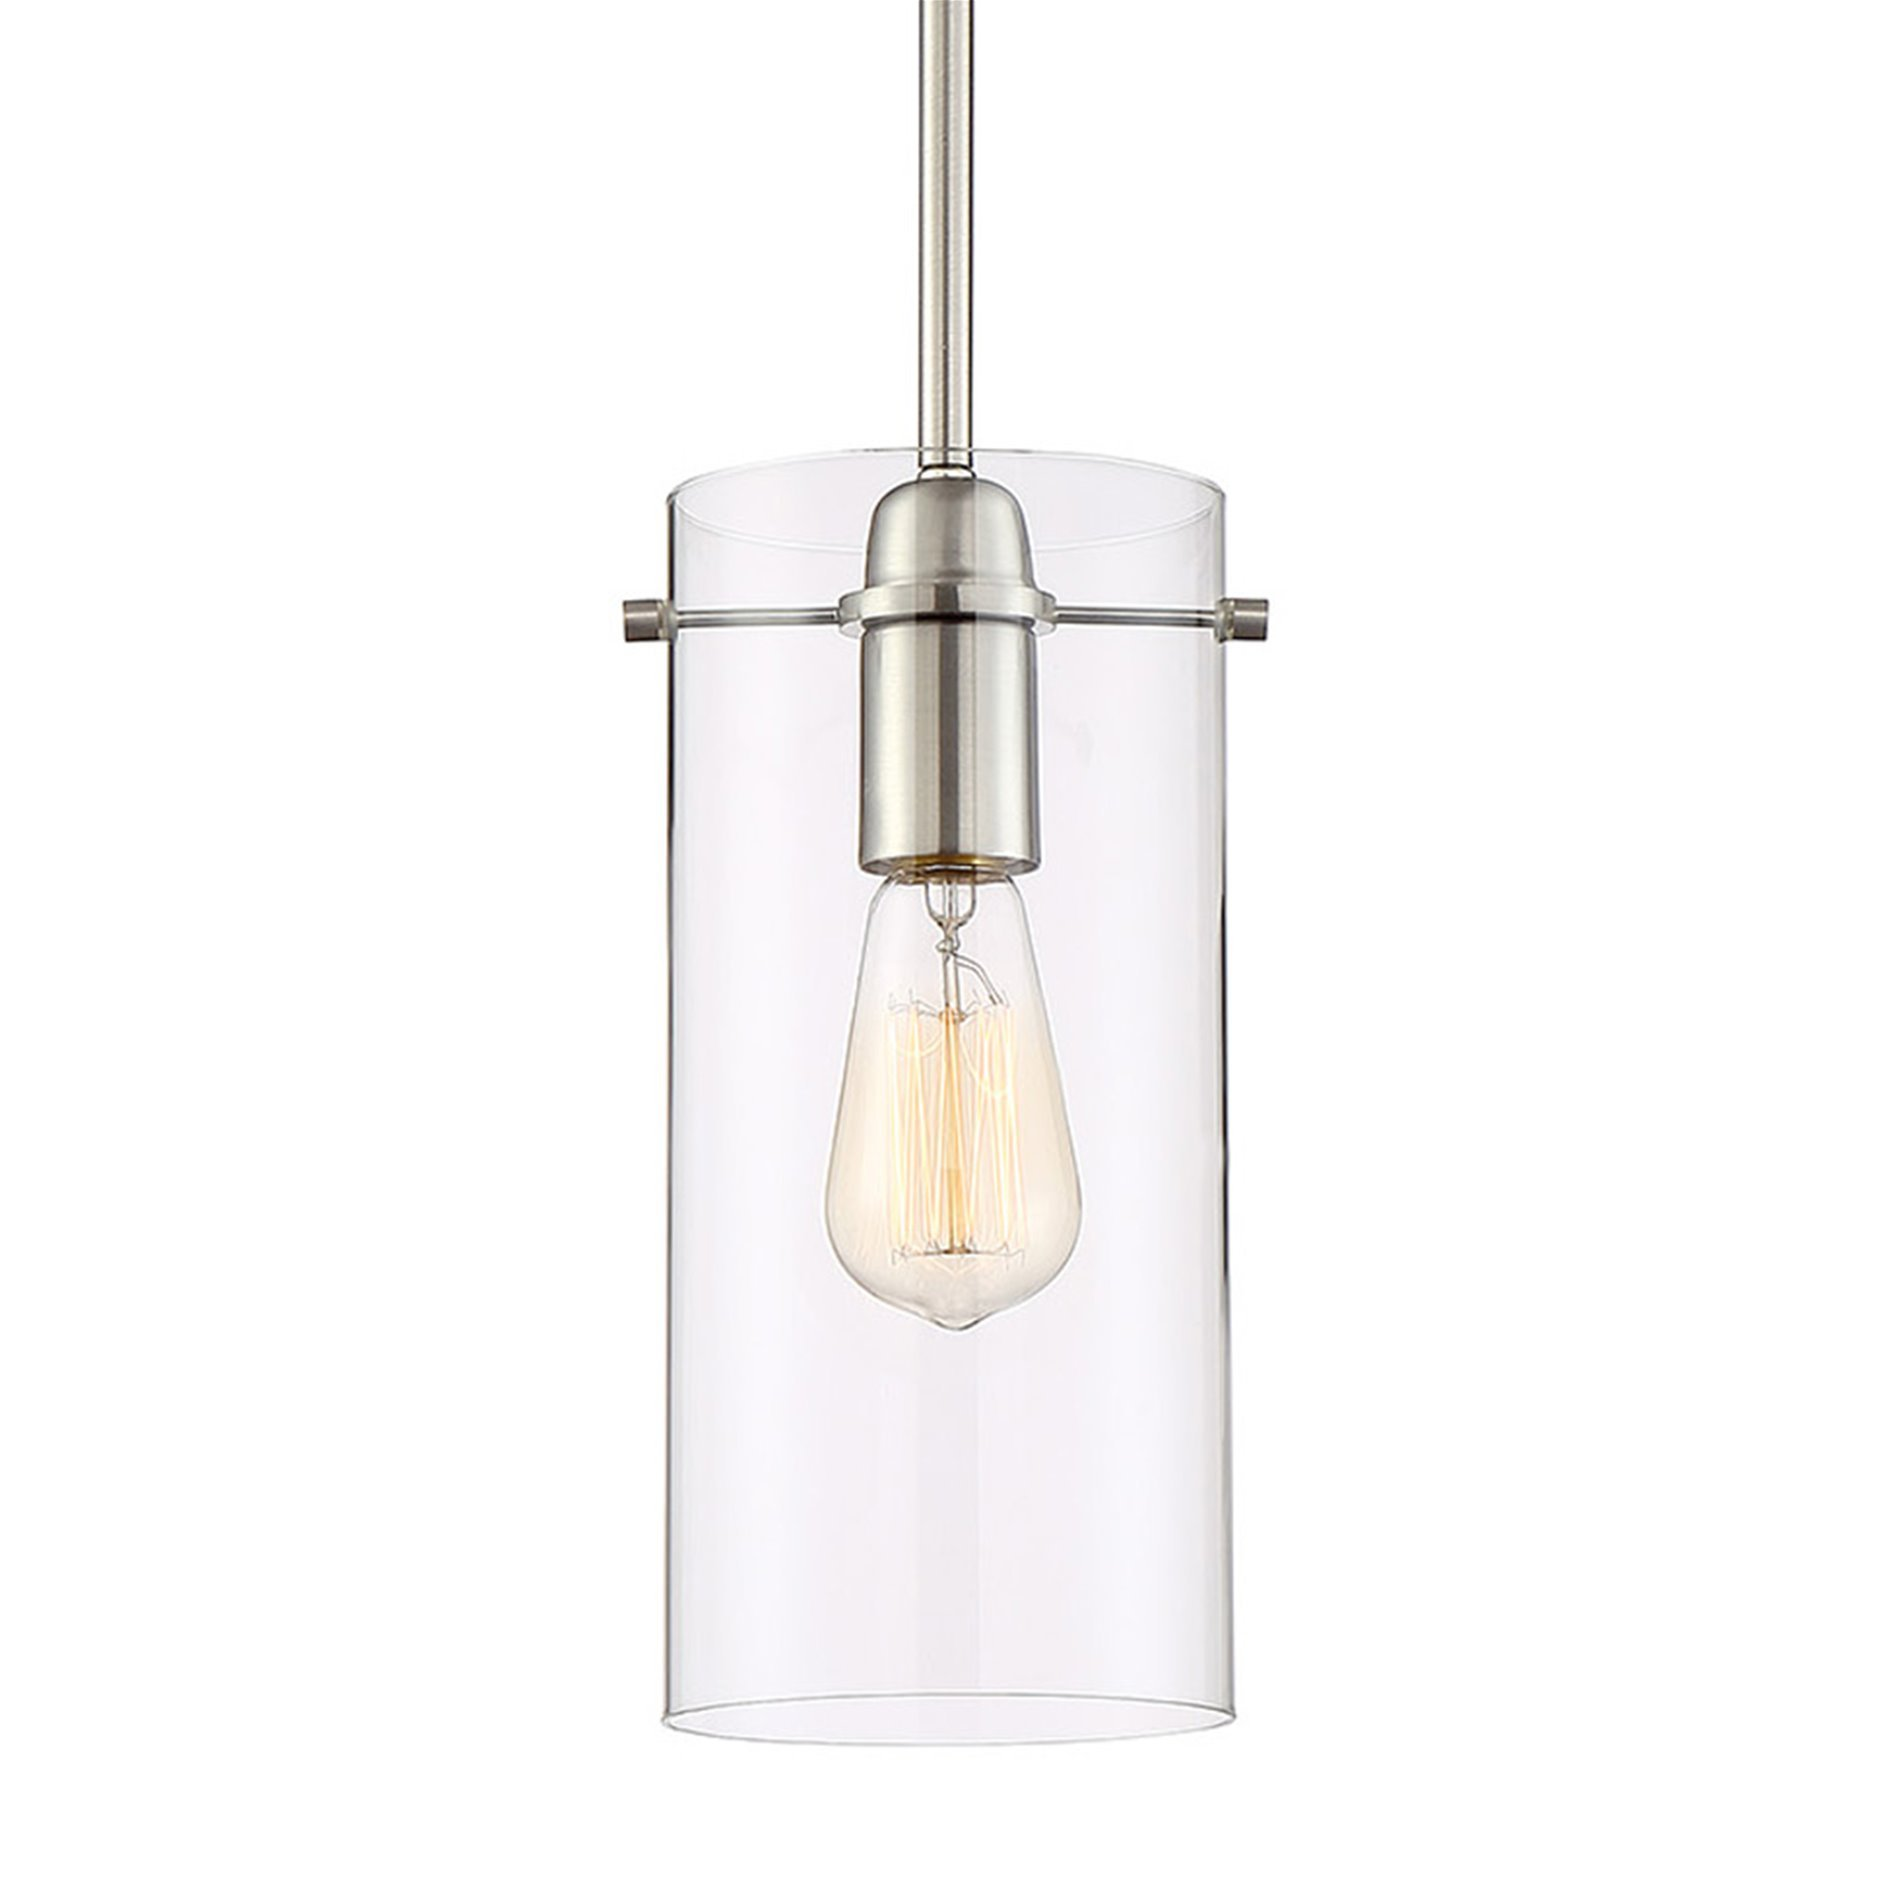 Kira Home Inara 11'' Contemporary 1-Light Stem-Hung Pendant Light with Glass Cylinder Shade, Brushed Nickel Finish